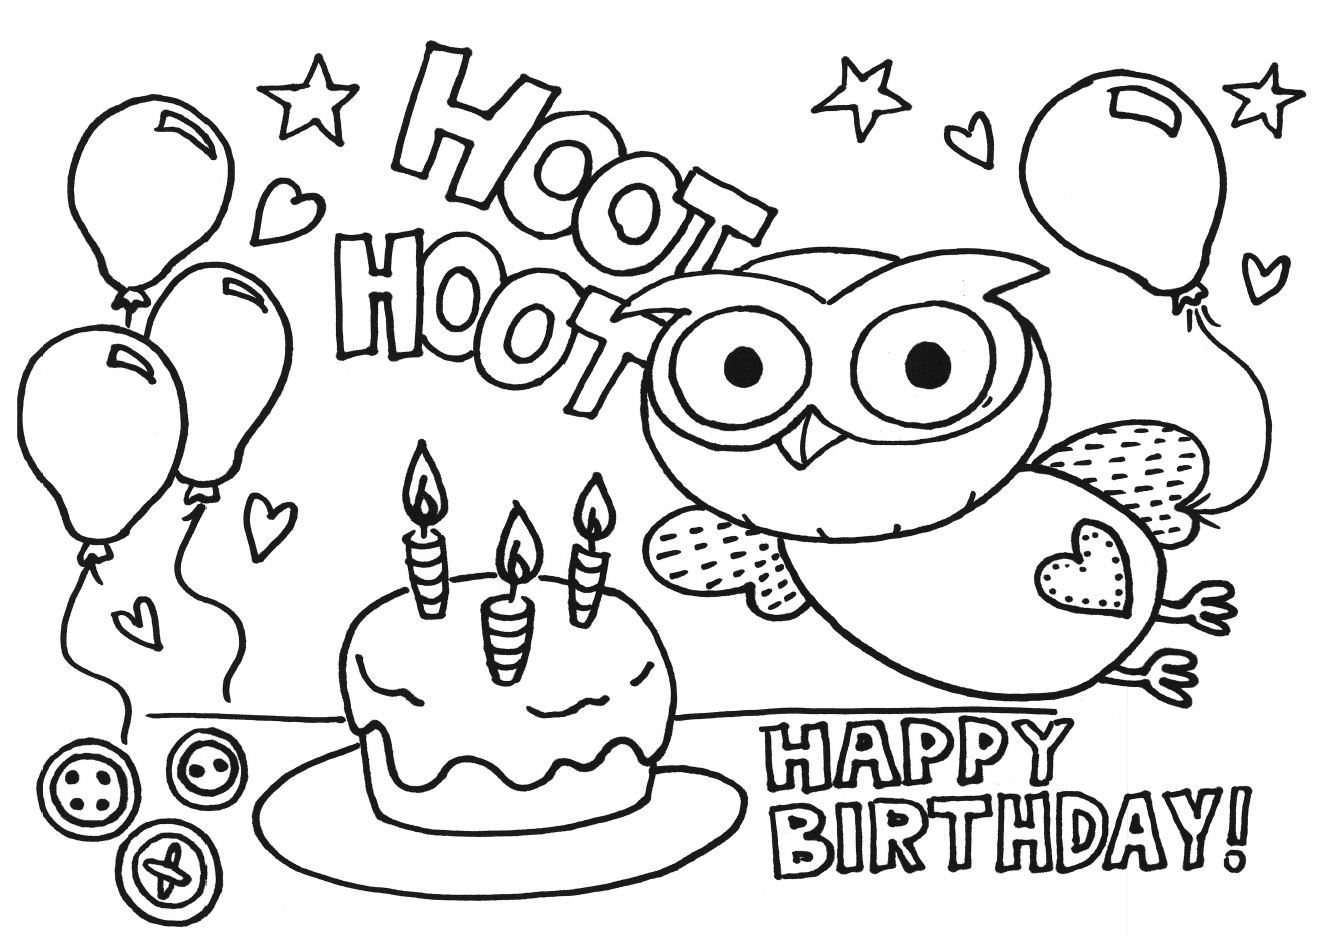 Milk Eyes quot Giggle And Hoot quot Free Download Colouring Pages